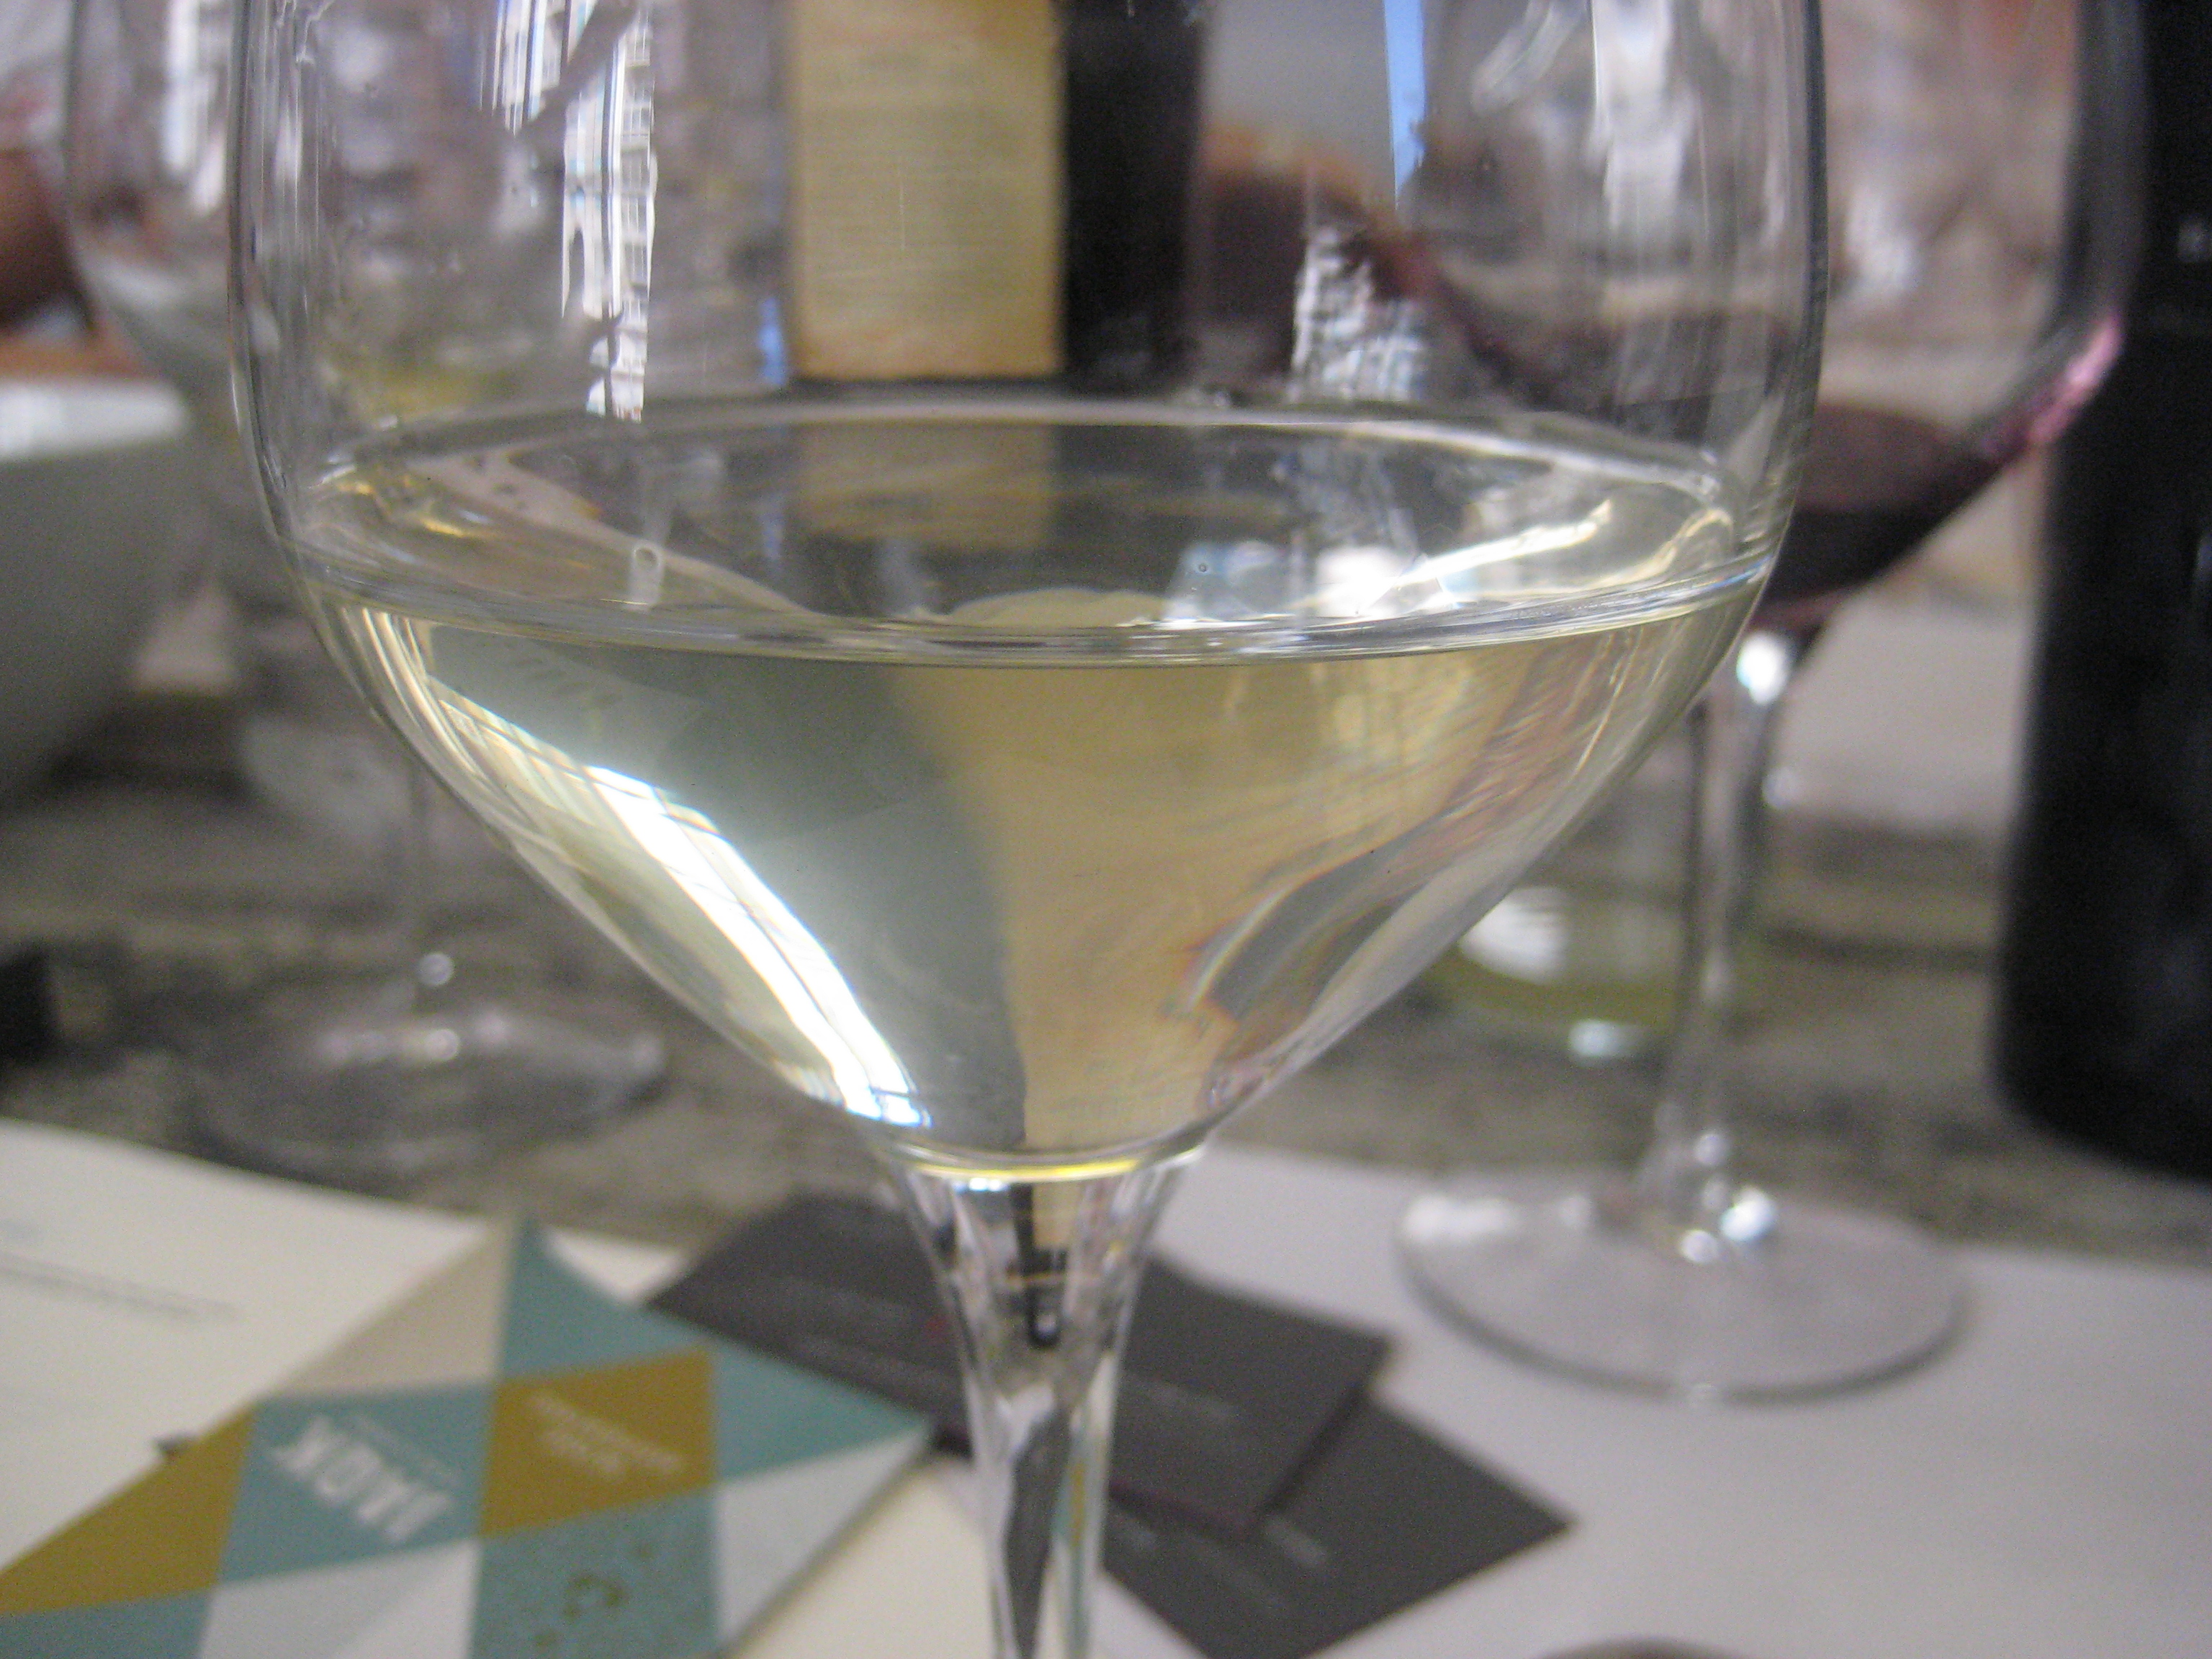 The Sauvignon Blanc was my fav of the whites.